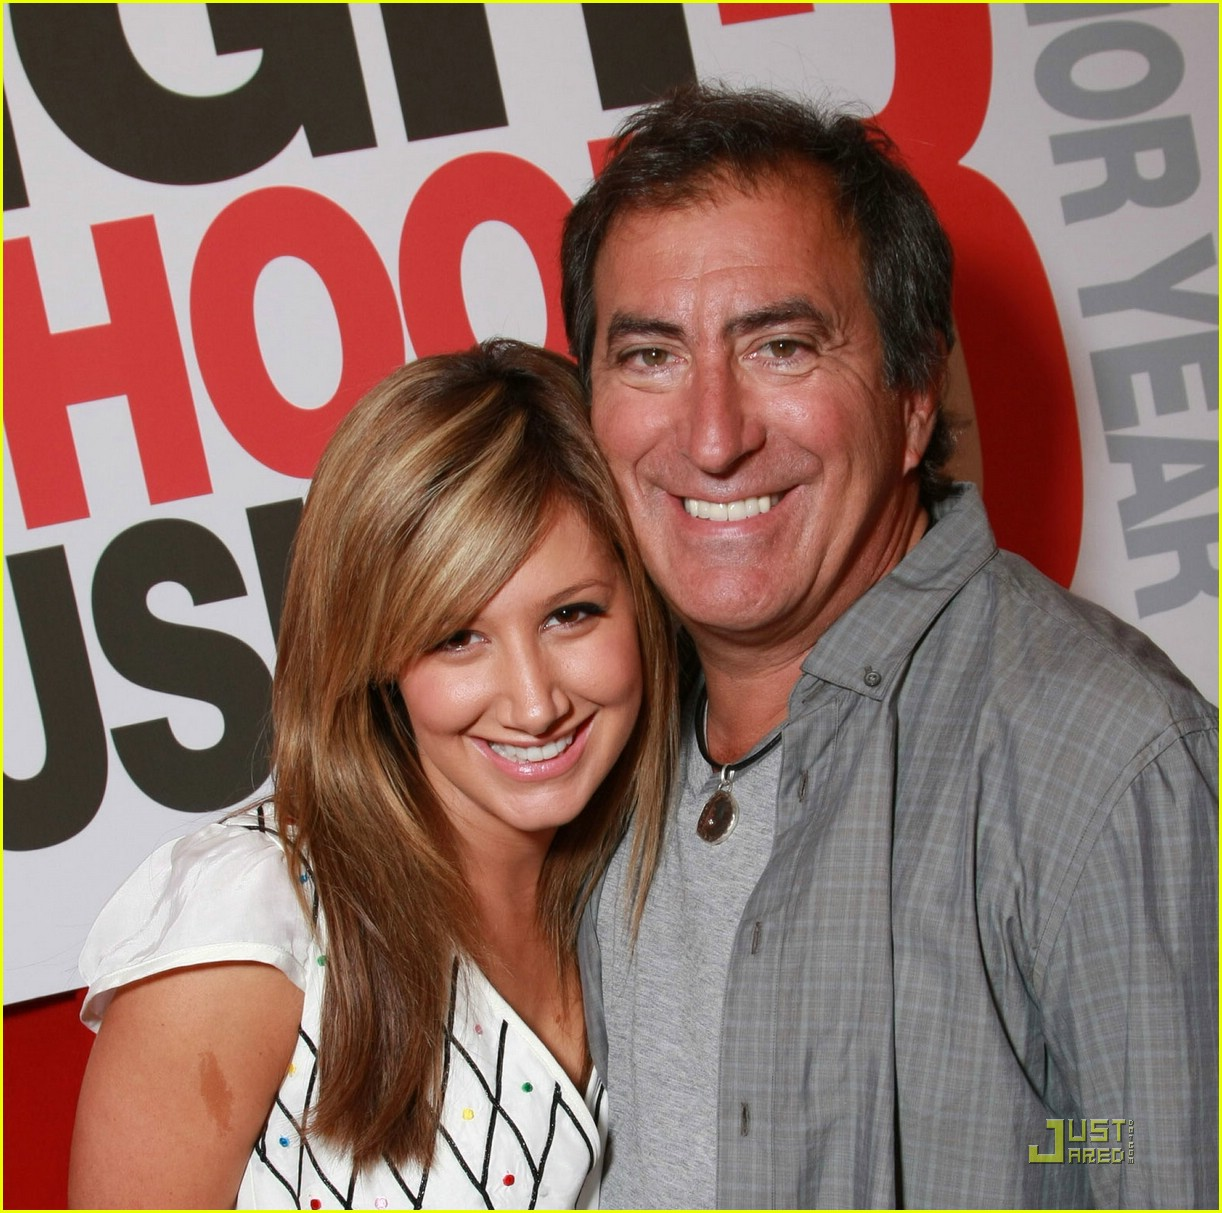 Ashley tisdale and zac efron dating 2014